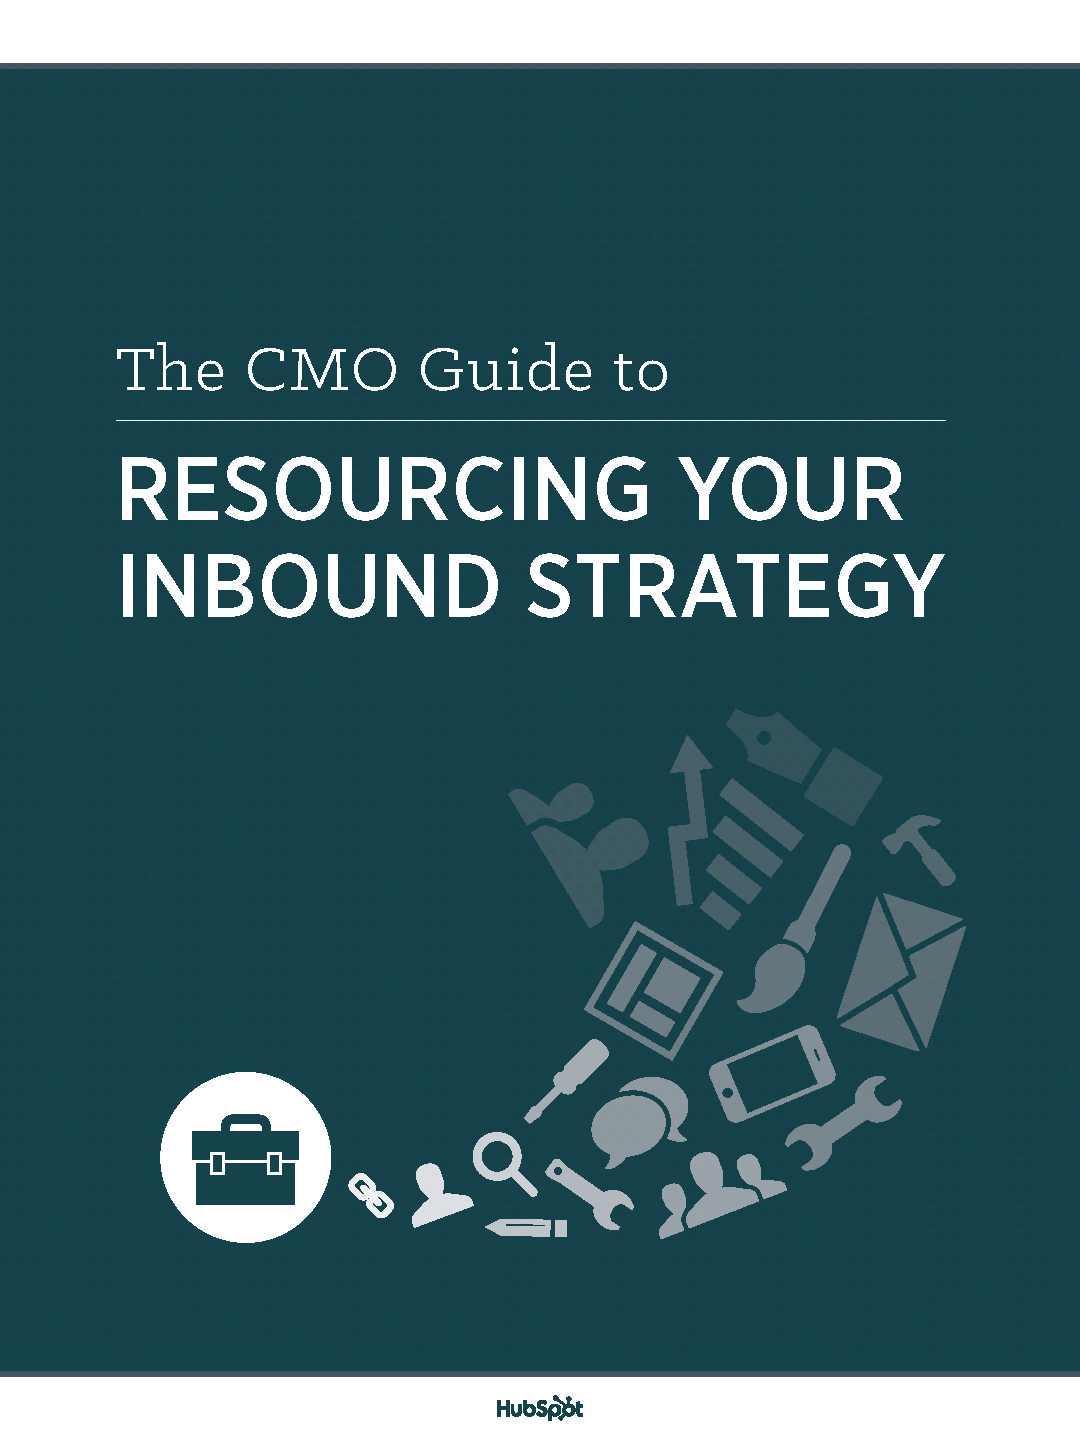 inbound-strategy-coverflat.png